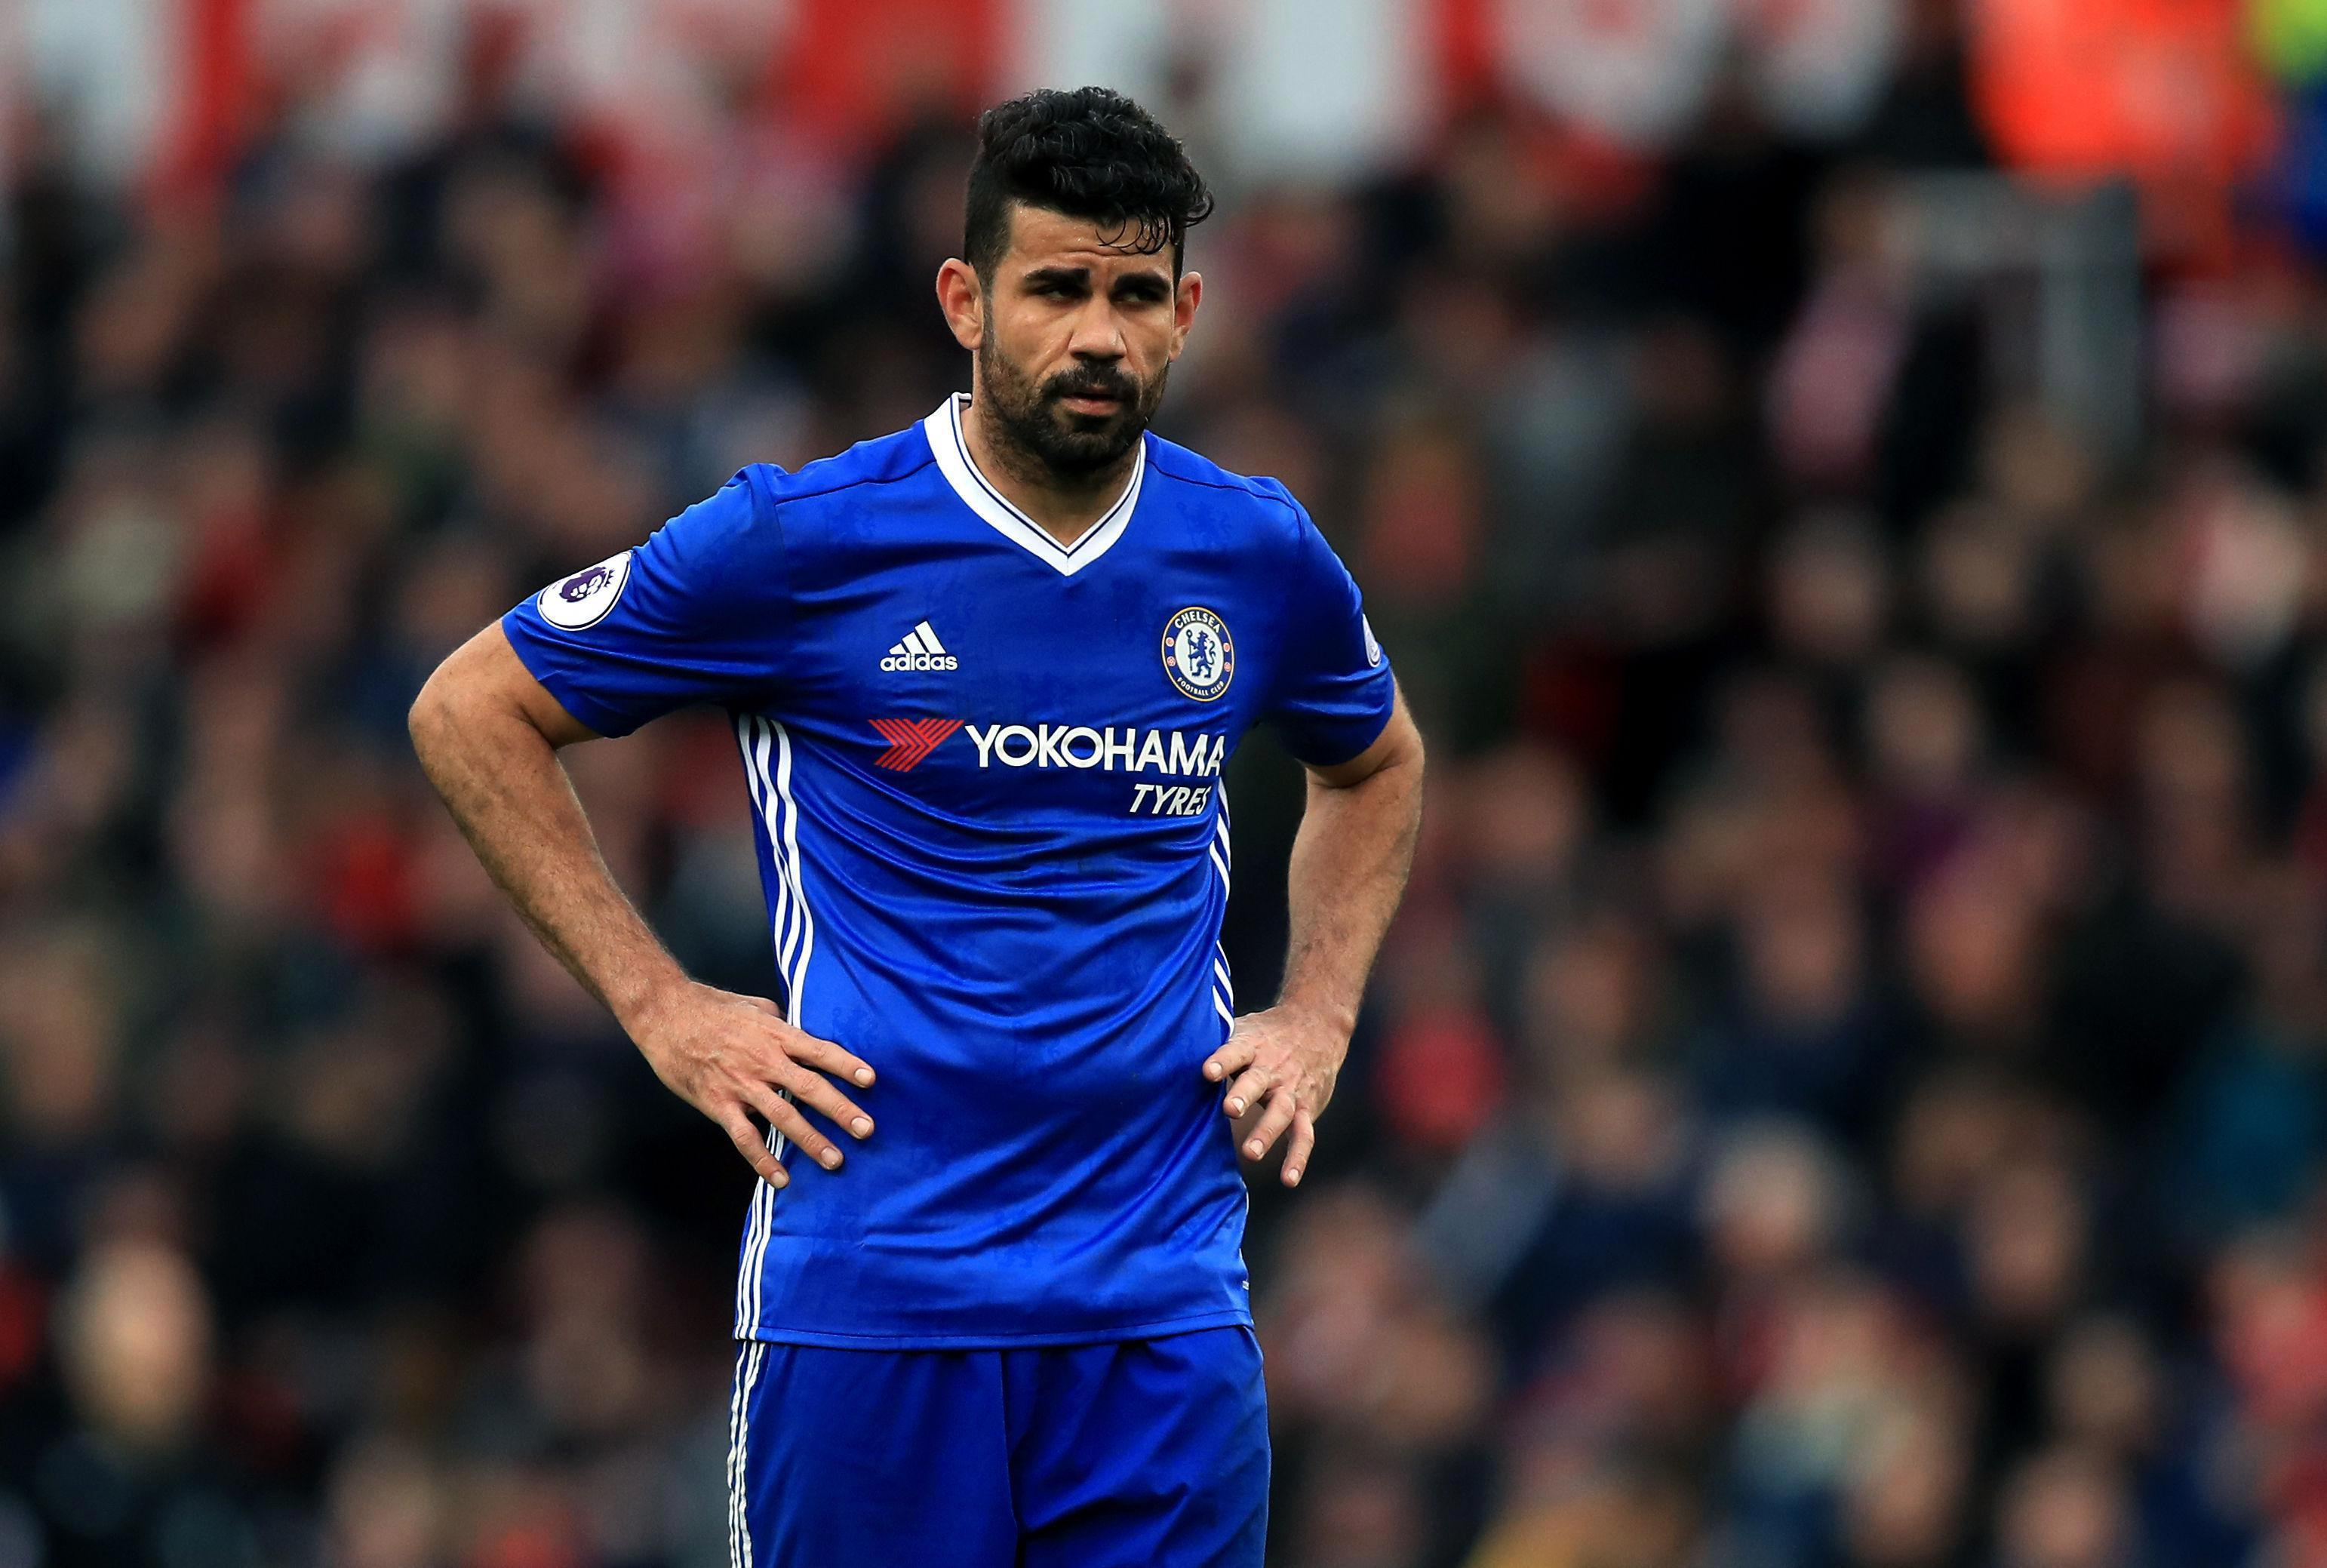 Chelsea striker Diego Costa is closing in on a return to Atletico Madrid